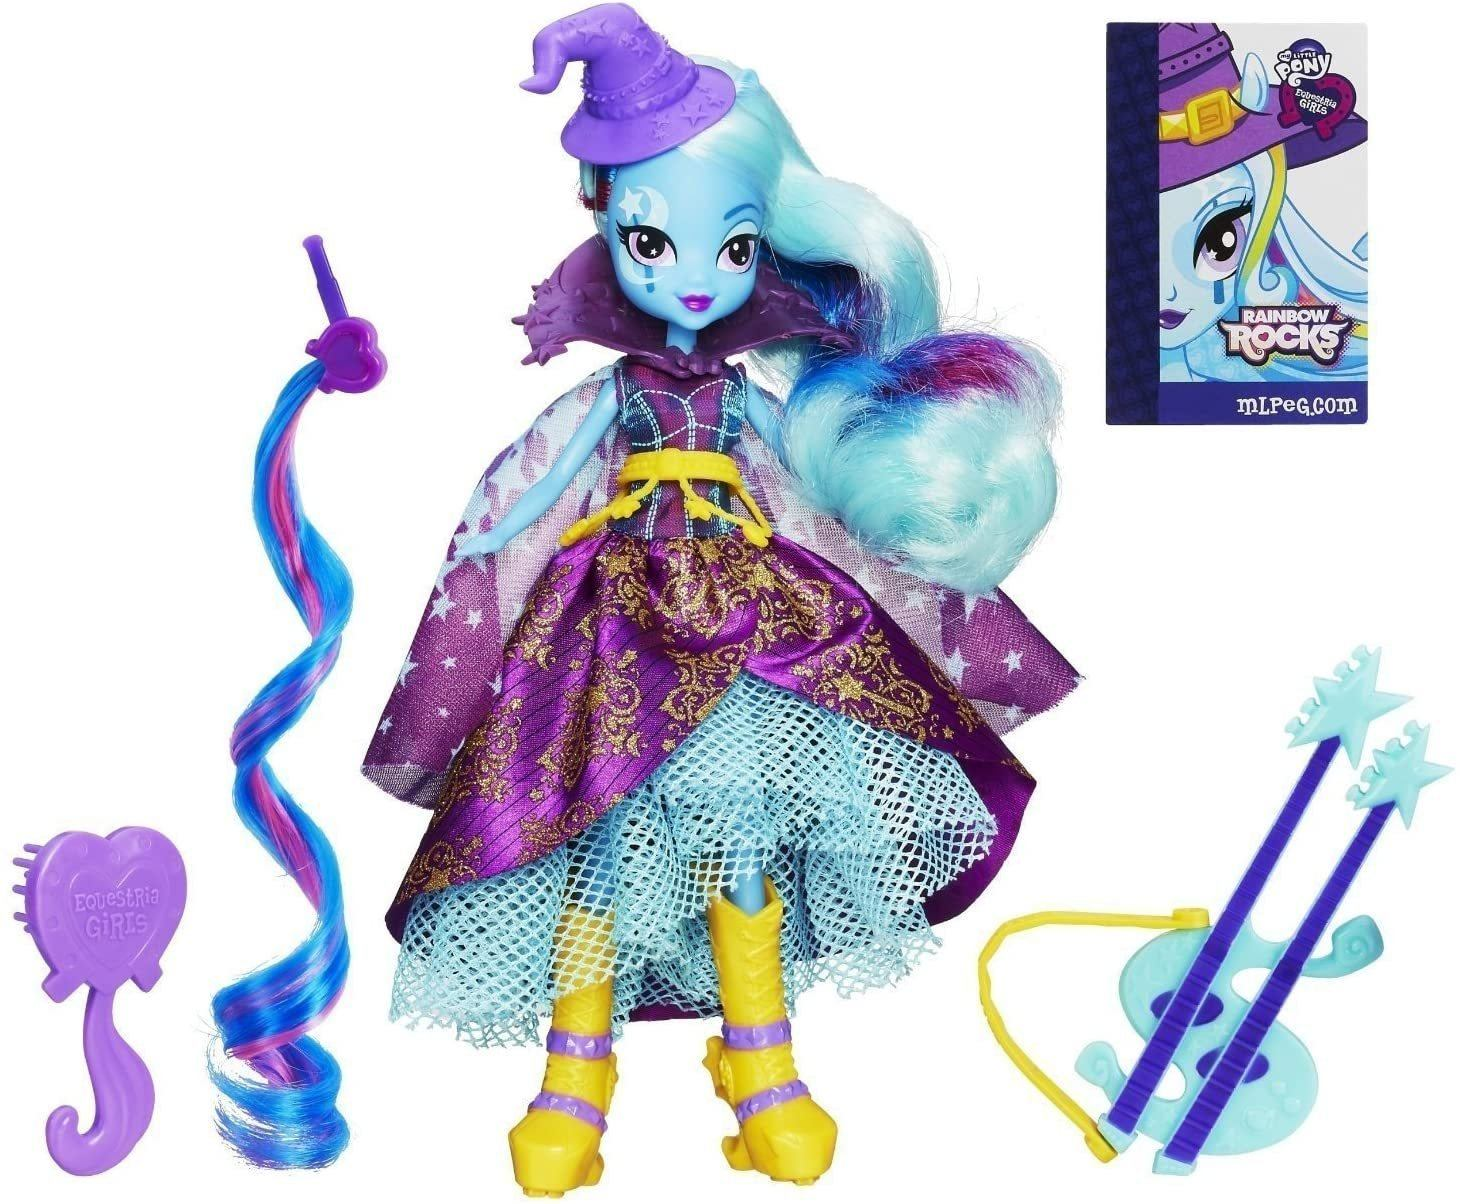 My Little Pony Equestria Girls Rainbow Rocks TRIXIE LULAMOON - TOYBOX Toy Shop